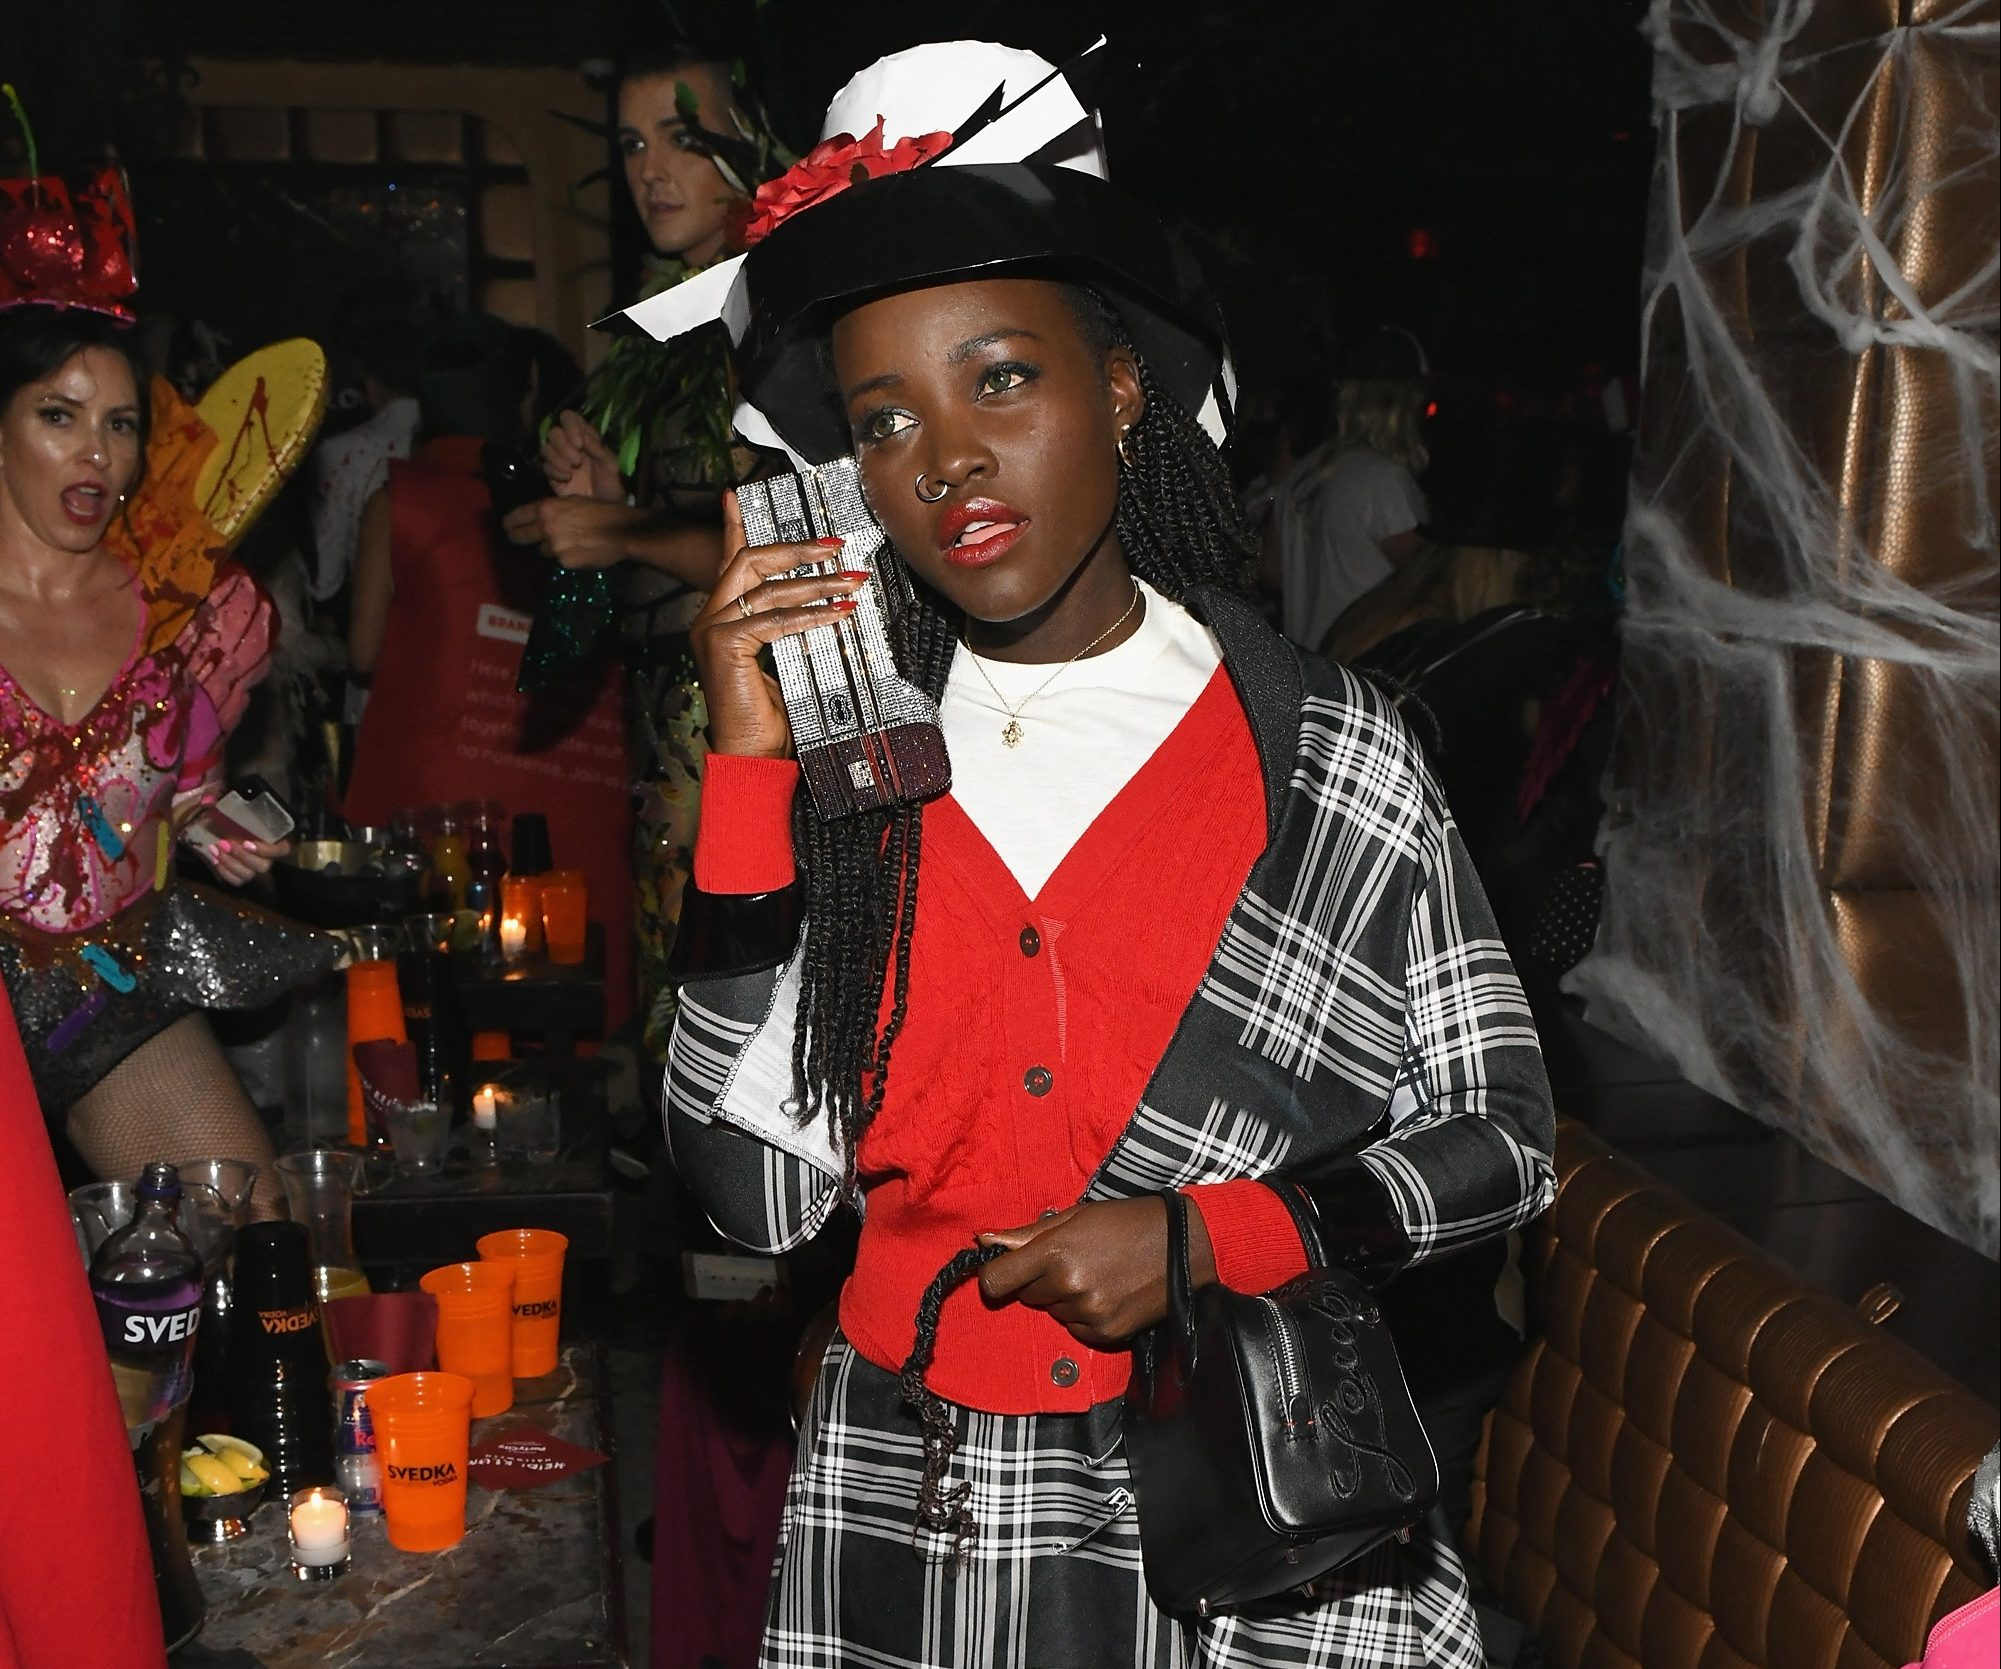 Lupita Nyong'o dressed as Dionne from Clueless and it was like totally iconic